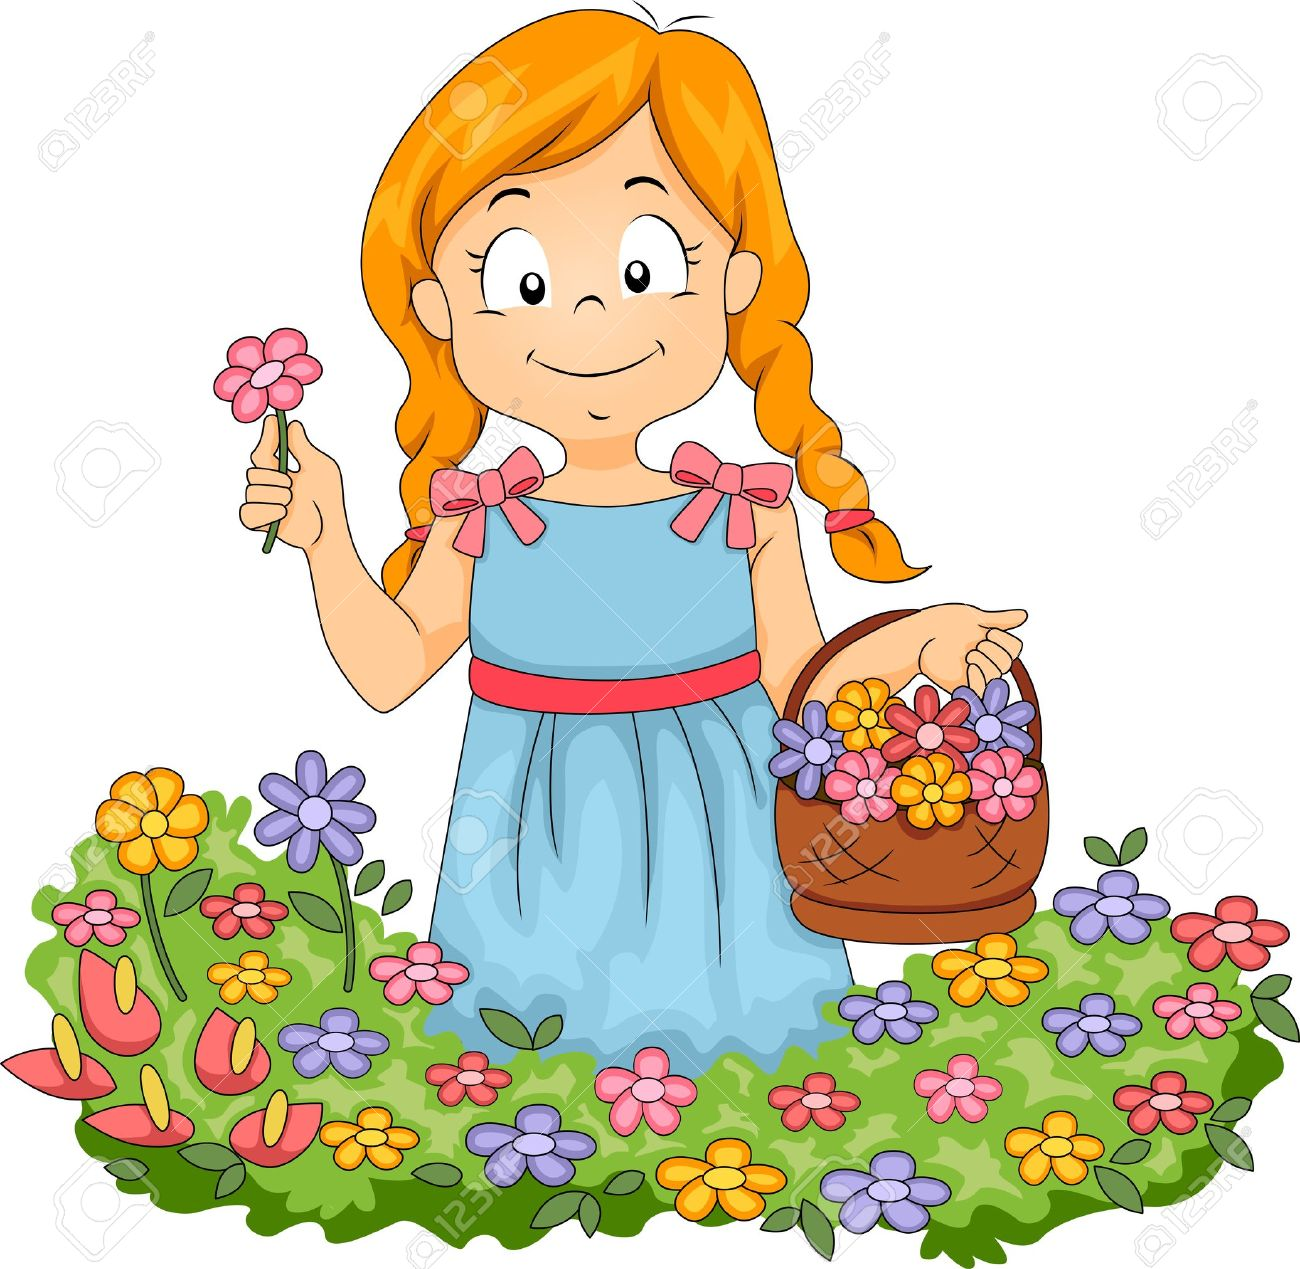 illustration of little kid with basketful of flowers picking